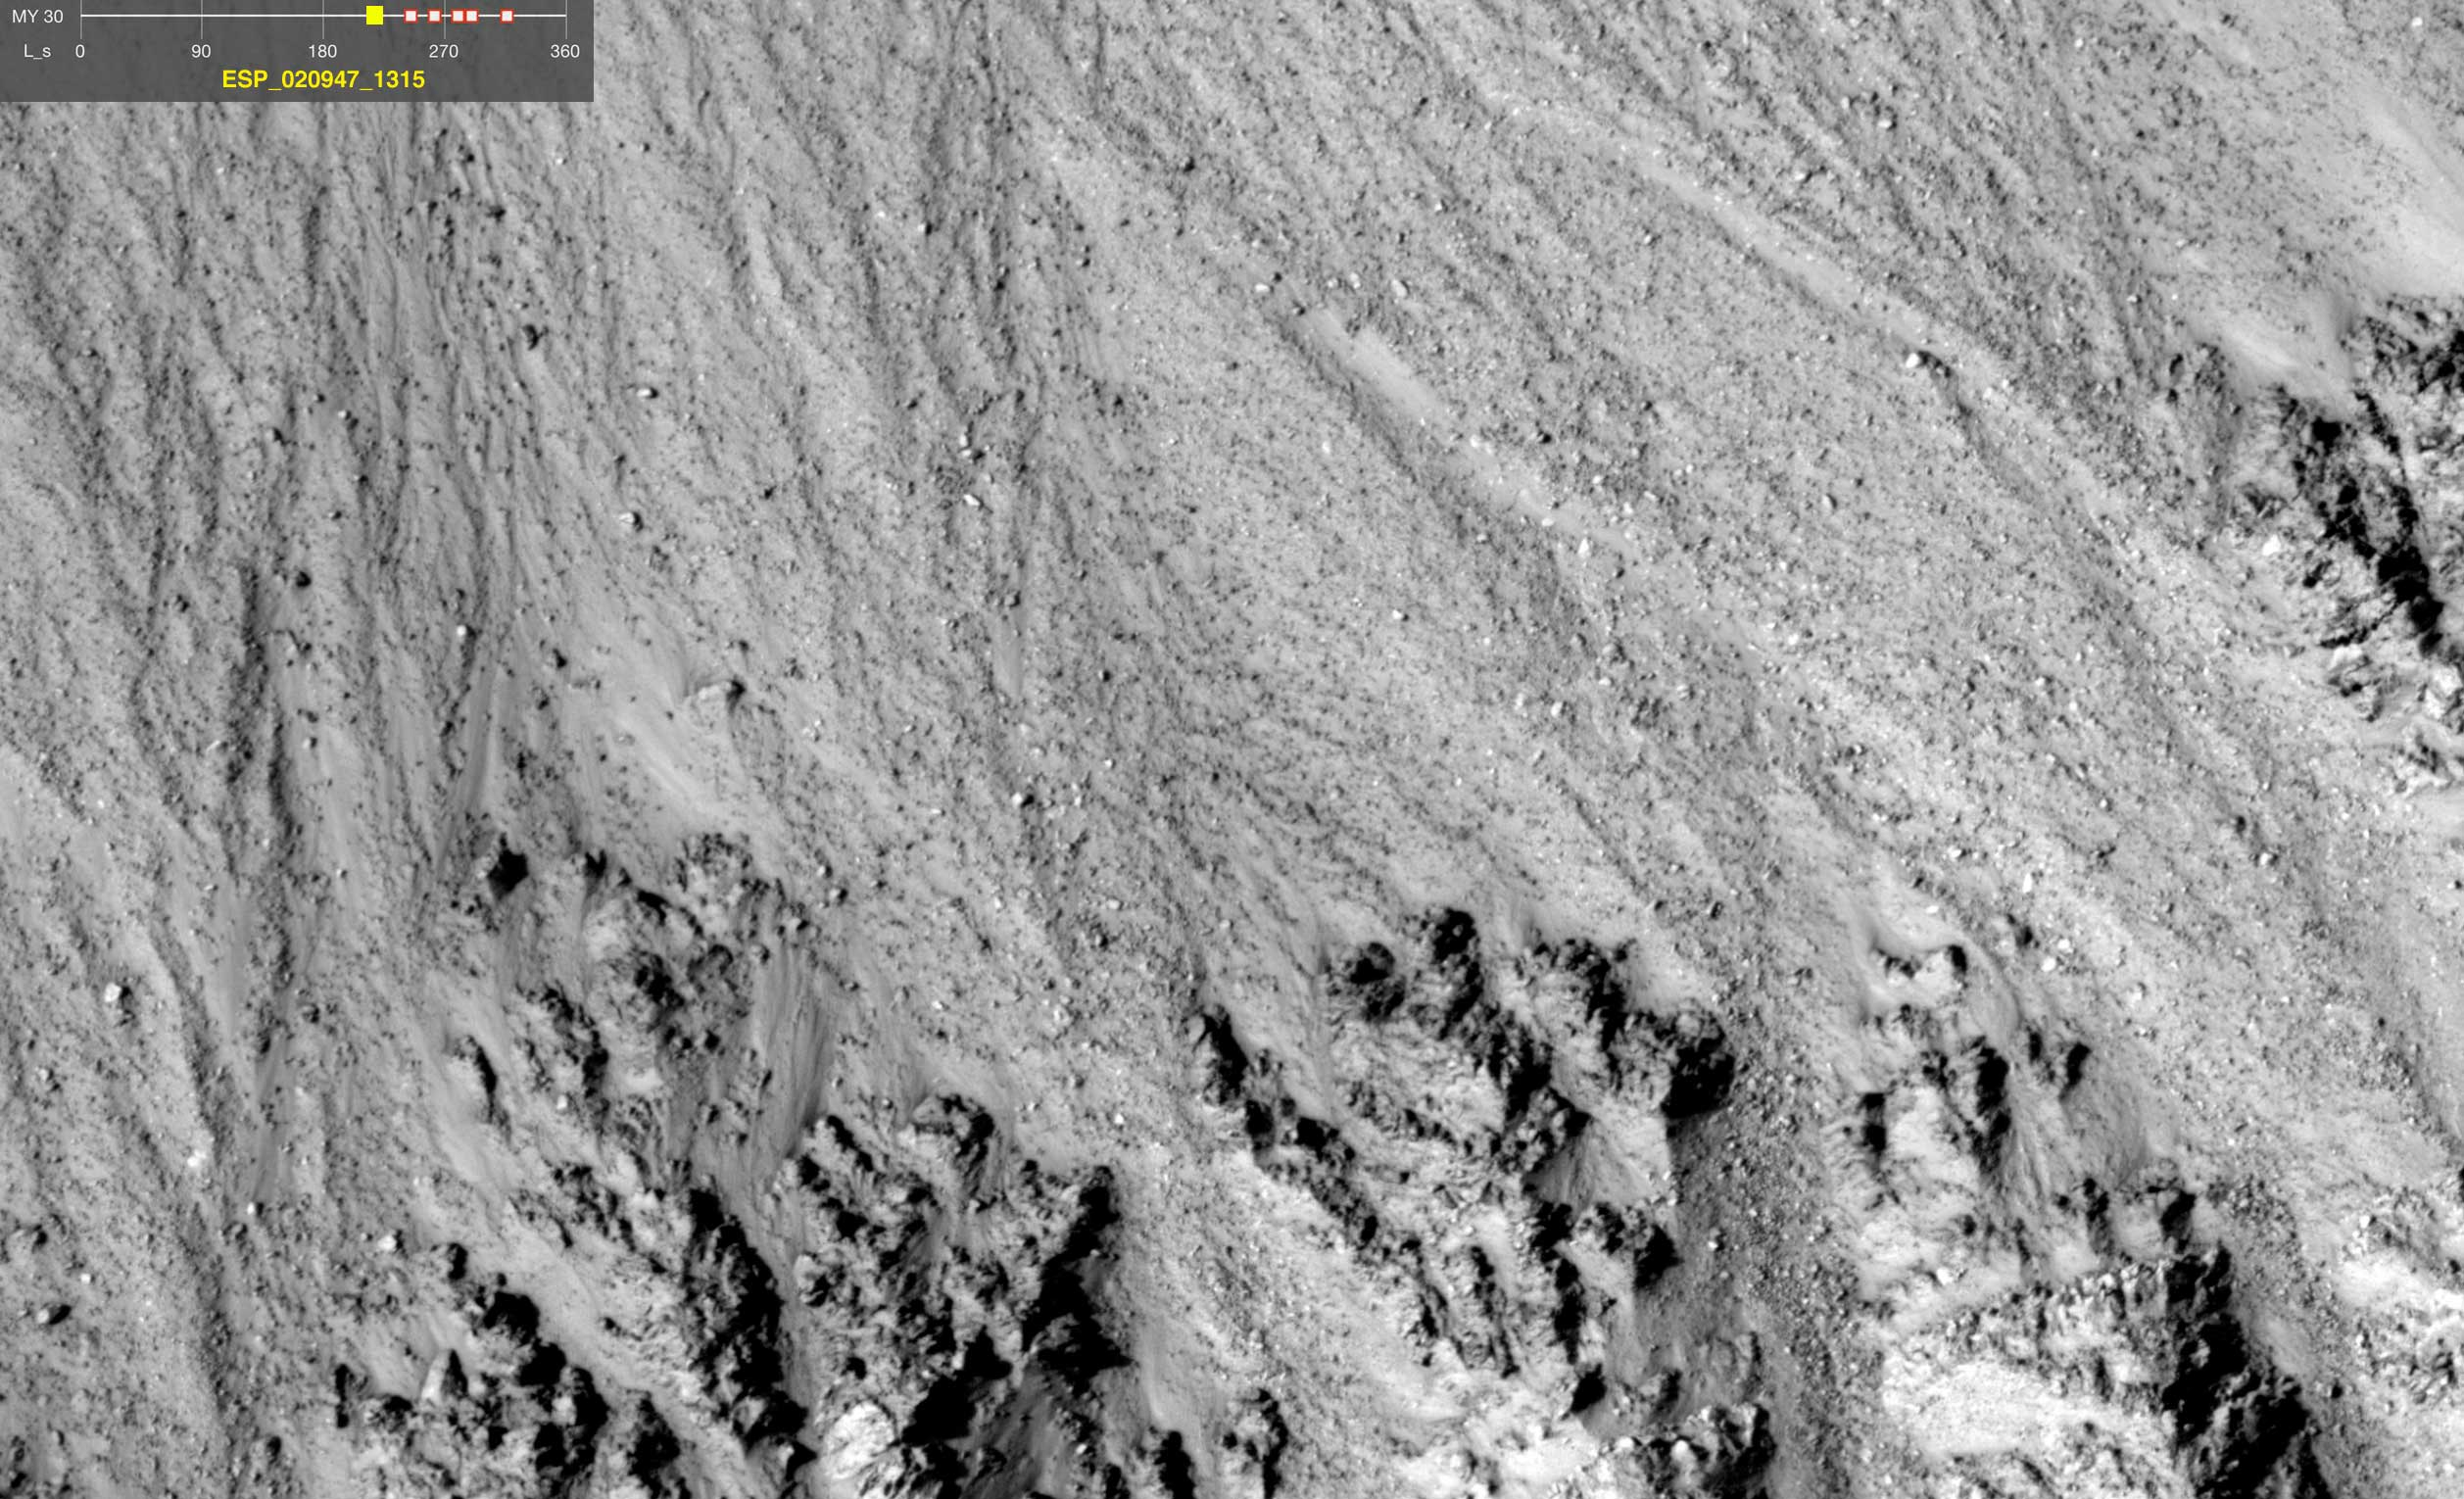 This series of images shows warm-season features that might be evidence of salty liquid water active on Mars today.